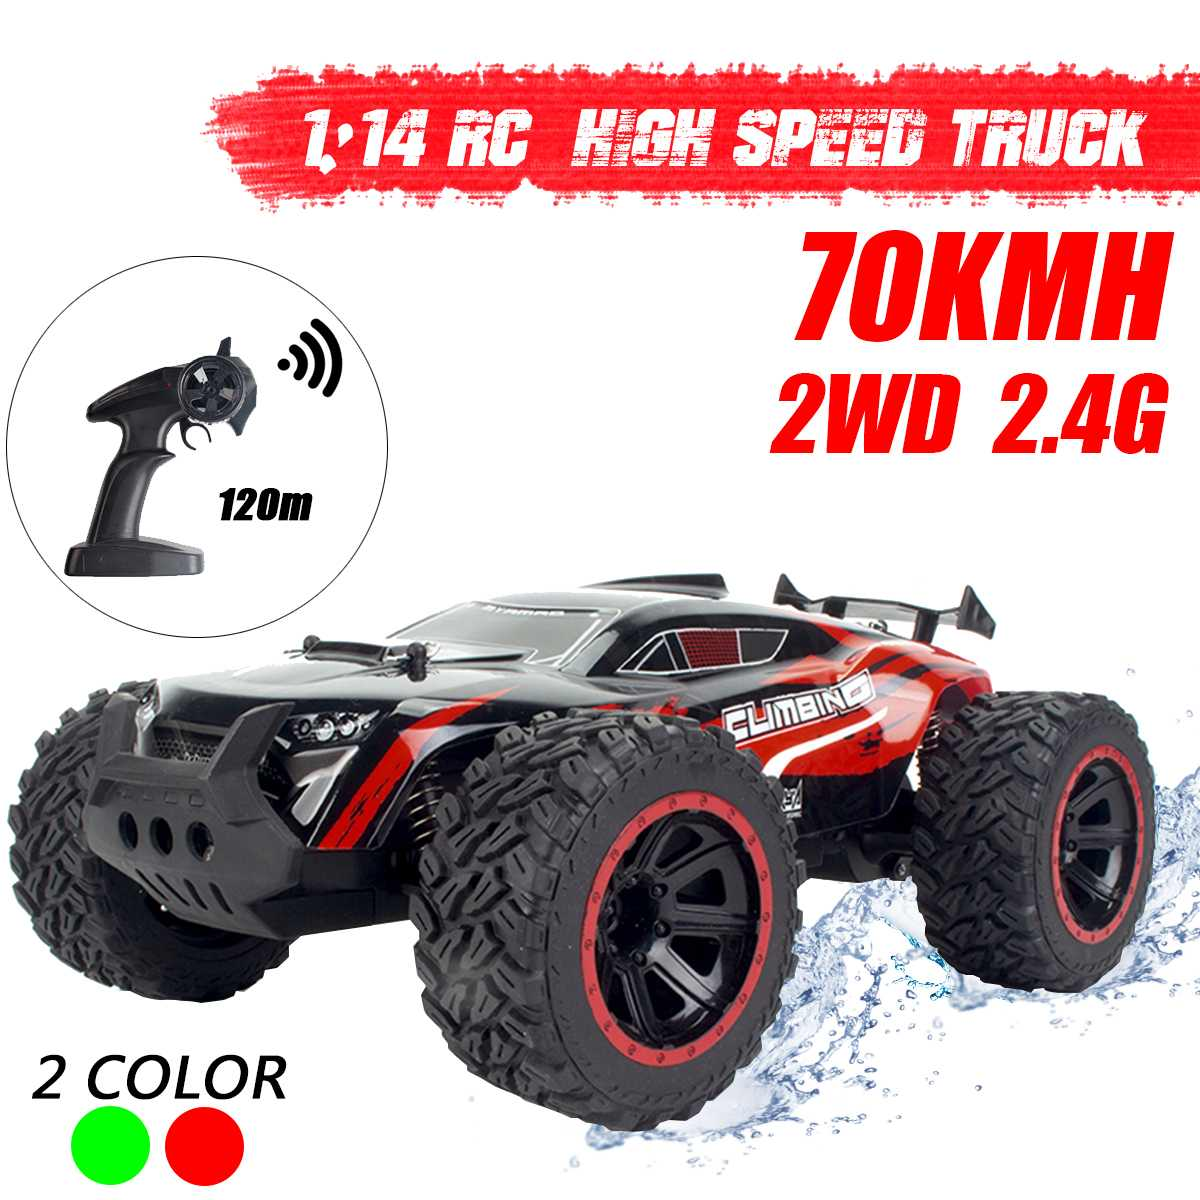 1:14 70Km/h 2WD RC Remote Control Off Road Racing Cars Vehicle 2.4Ghz Crawlers Electric Monster Truck RC image